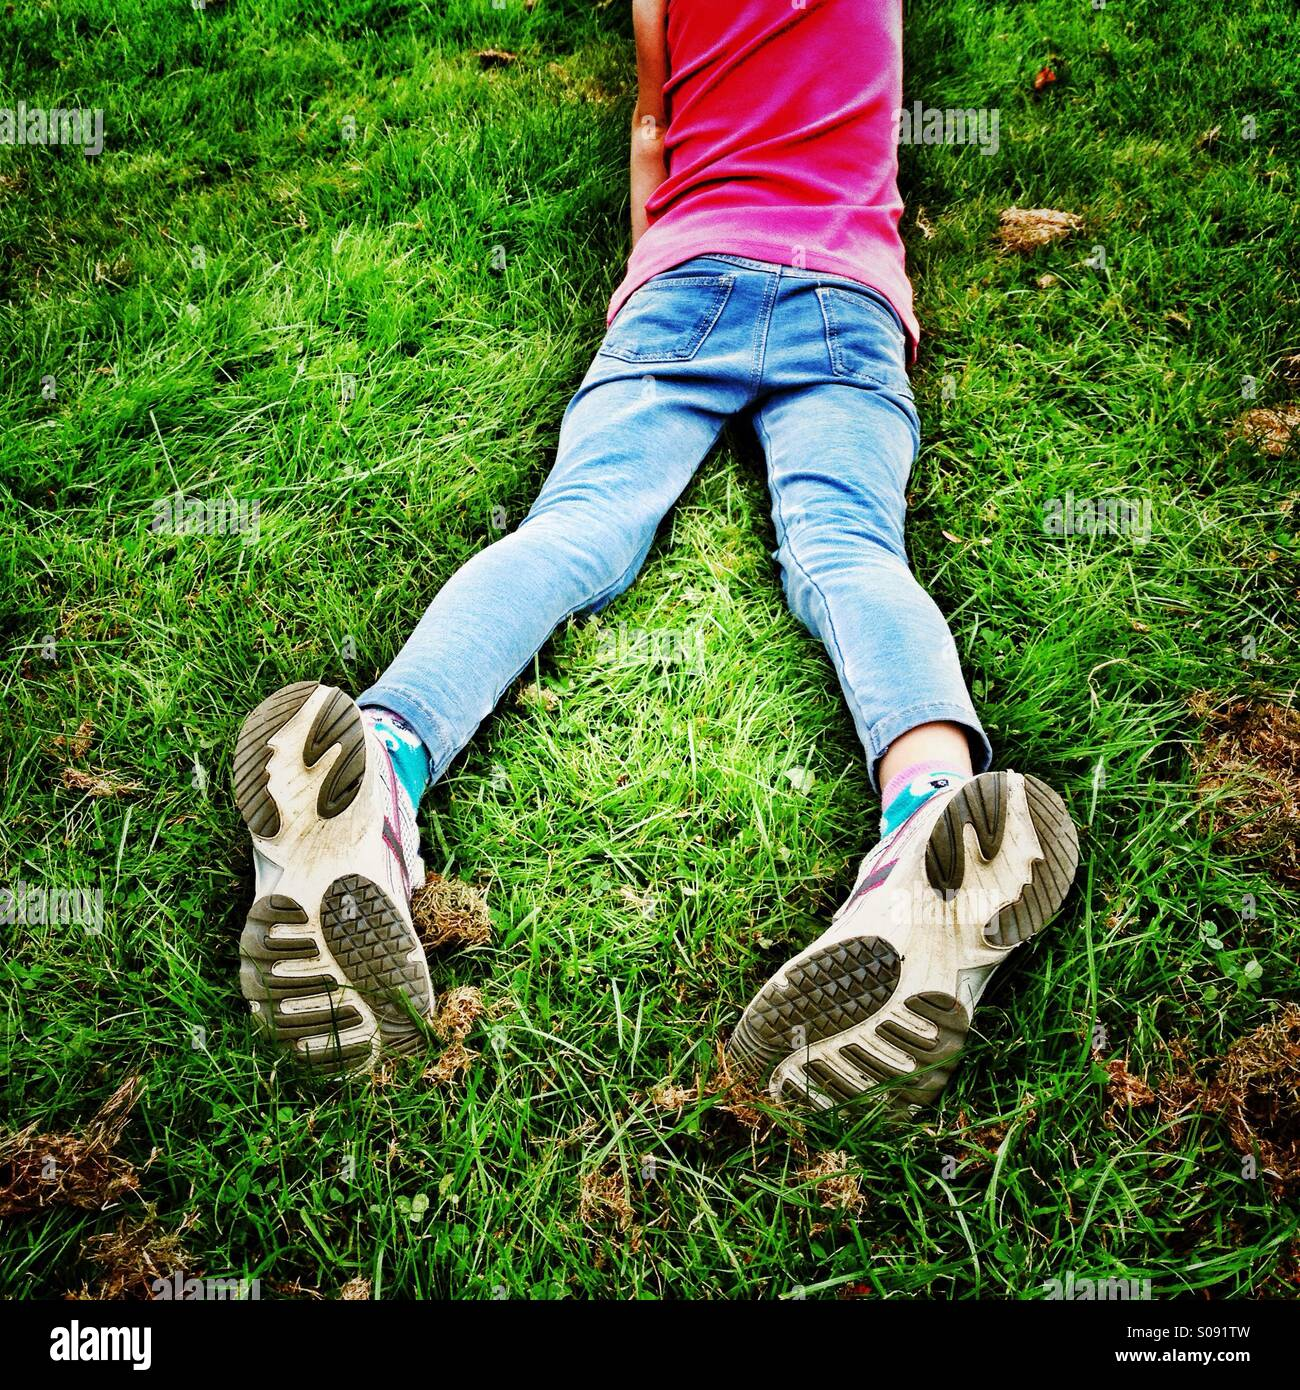 Legs of young girl lying in grass with soles of trainers facing upwards - Stock Image